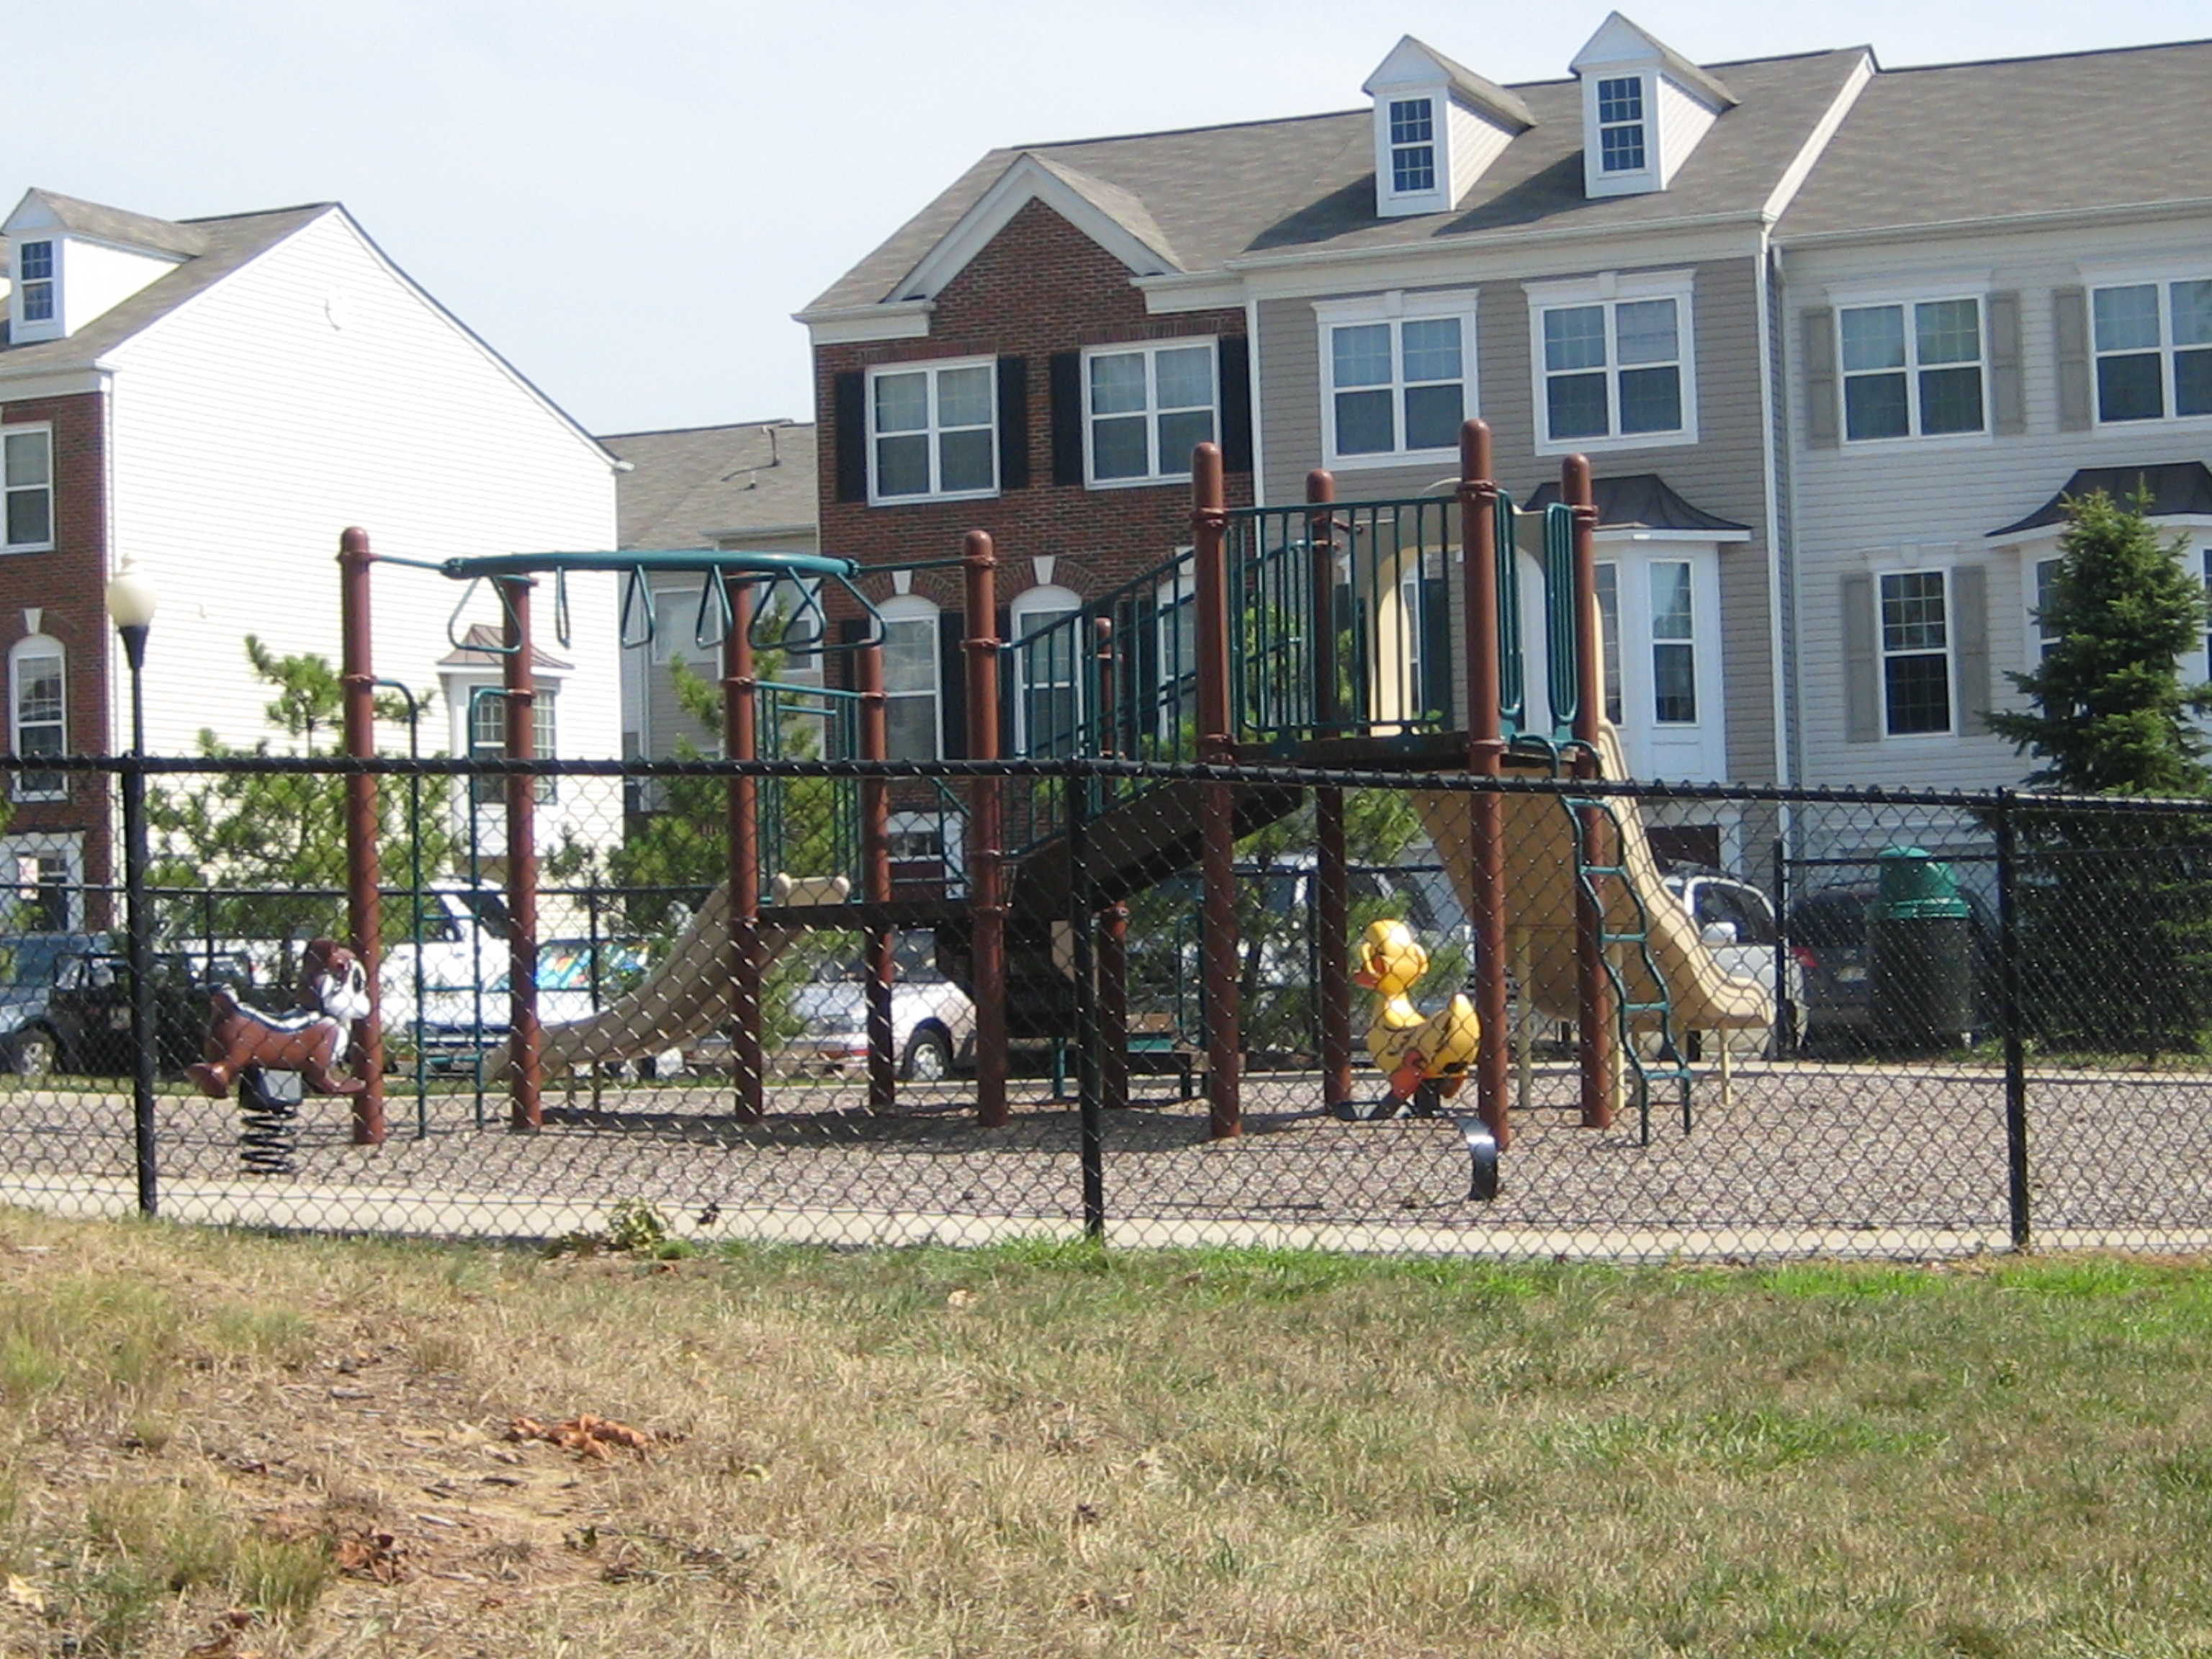 FHA Playground (1) - Located by Fiery Dawn Dr.